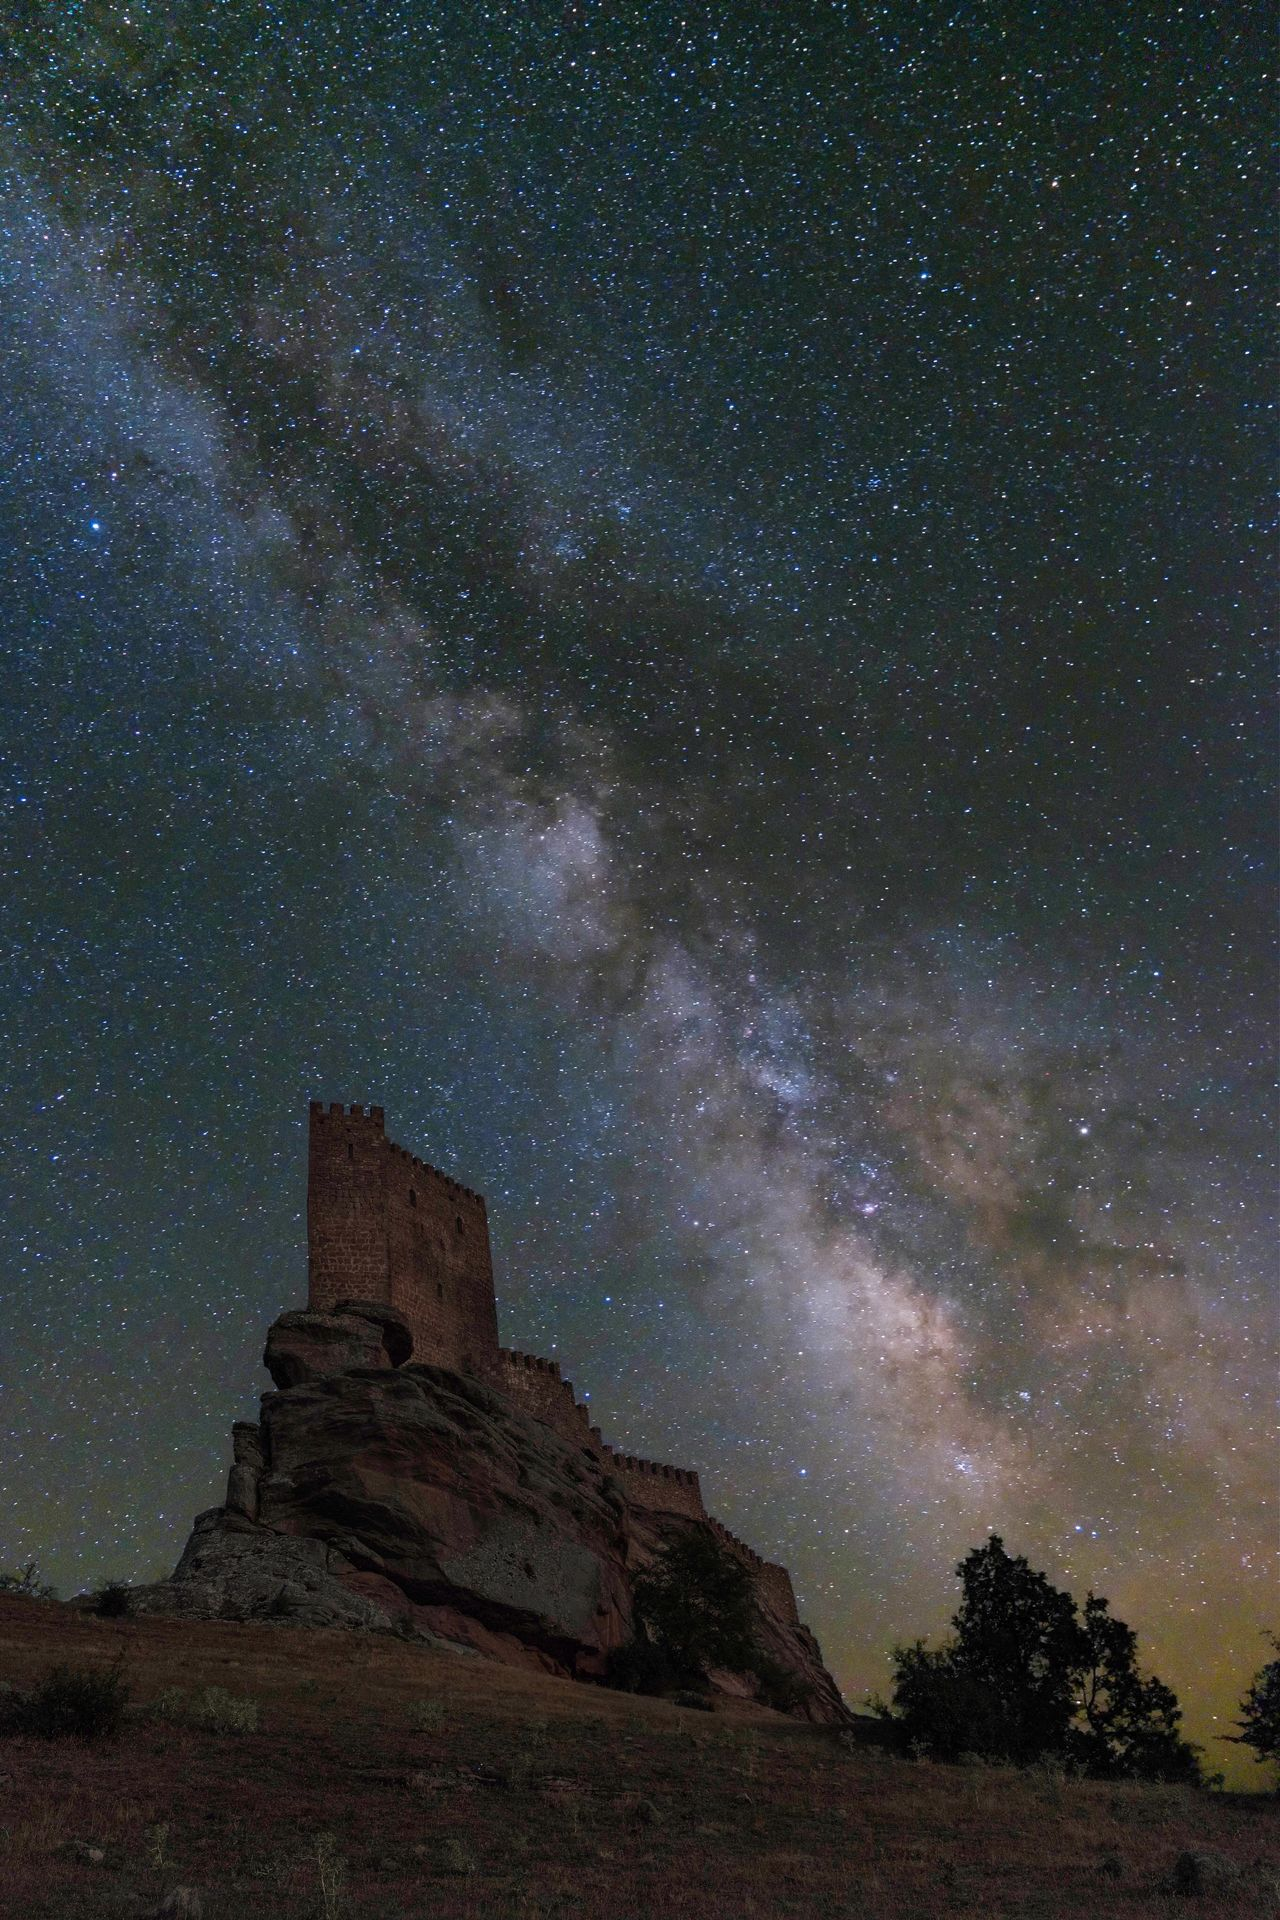 Star - Space Night Astronomy Milky Way Galaxy Low Angle View Sky Constellation No People Nature Outdoors Beauty In Nature Architecture Space SPAIN Guadalajara Castillo De Zafra Game Of Thrones Escensrio Summer